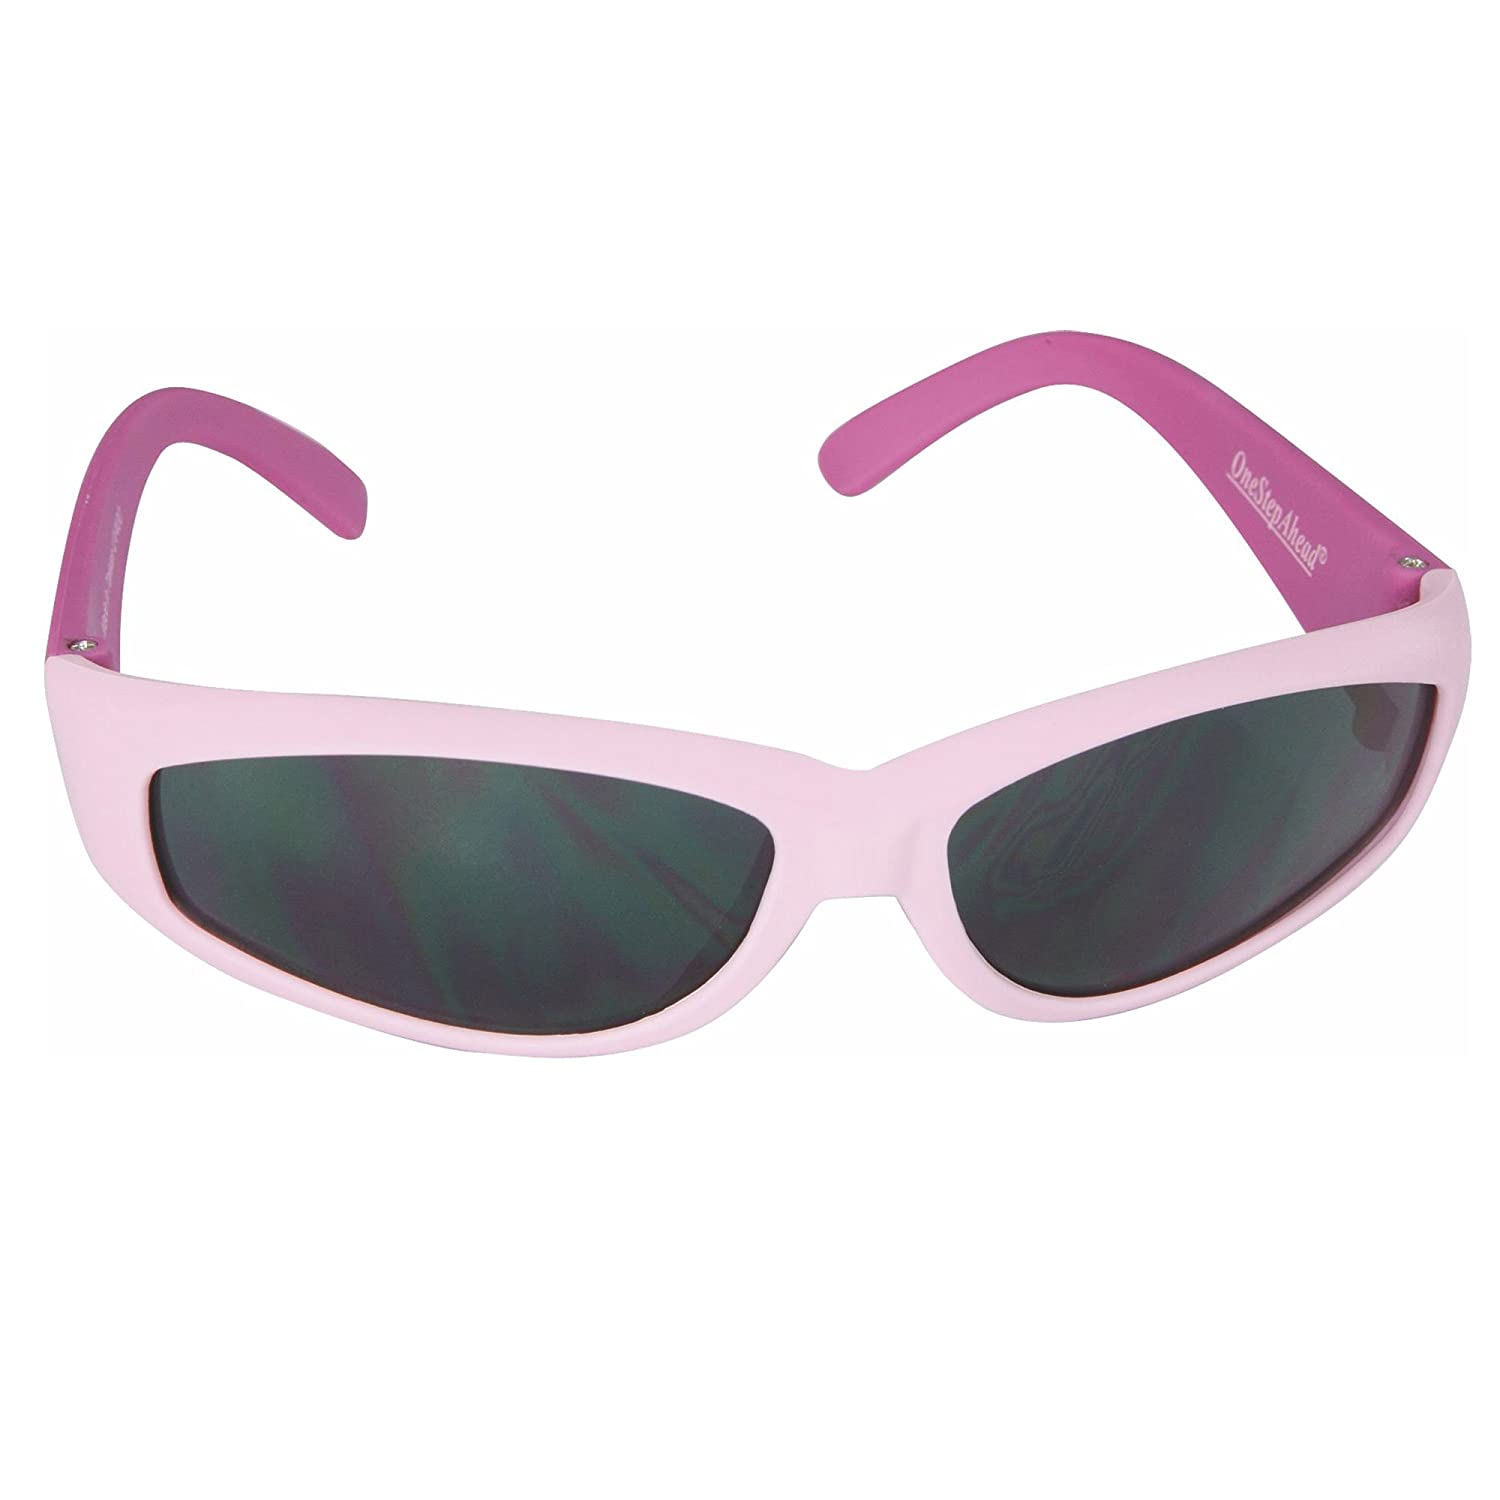 Sun Smarties Rubber Frame Sunglasses for Babies and Toddlers